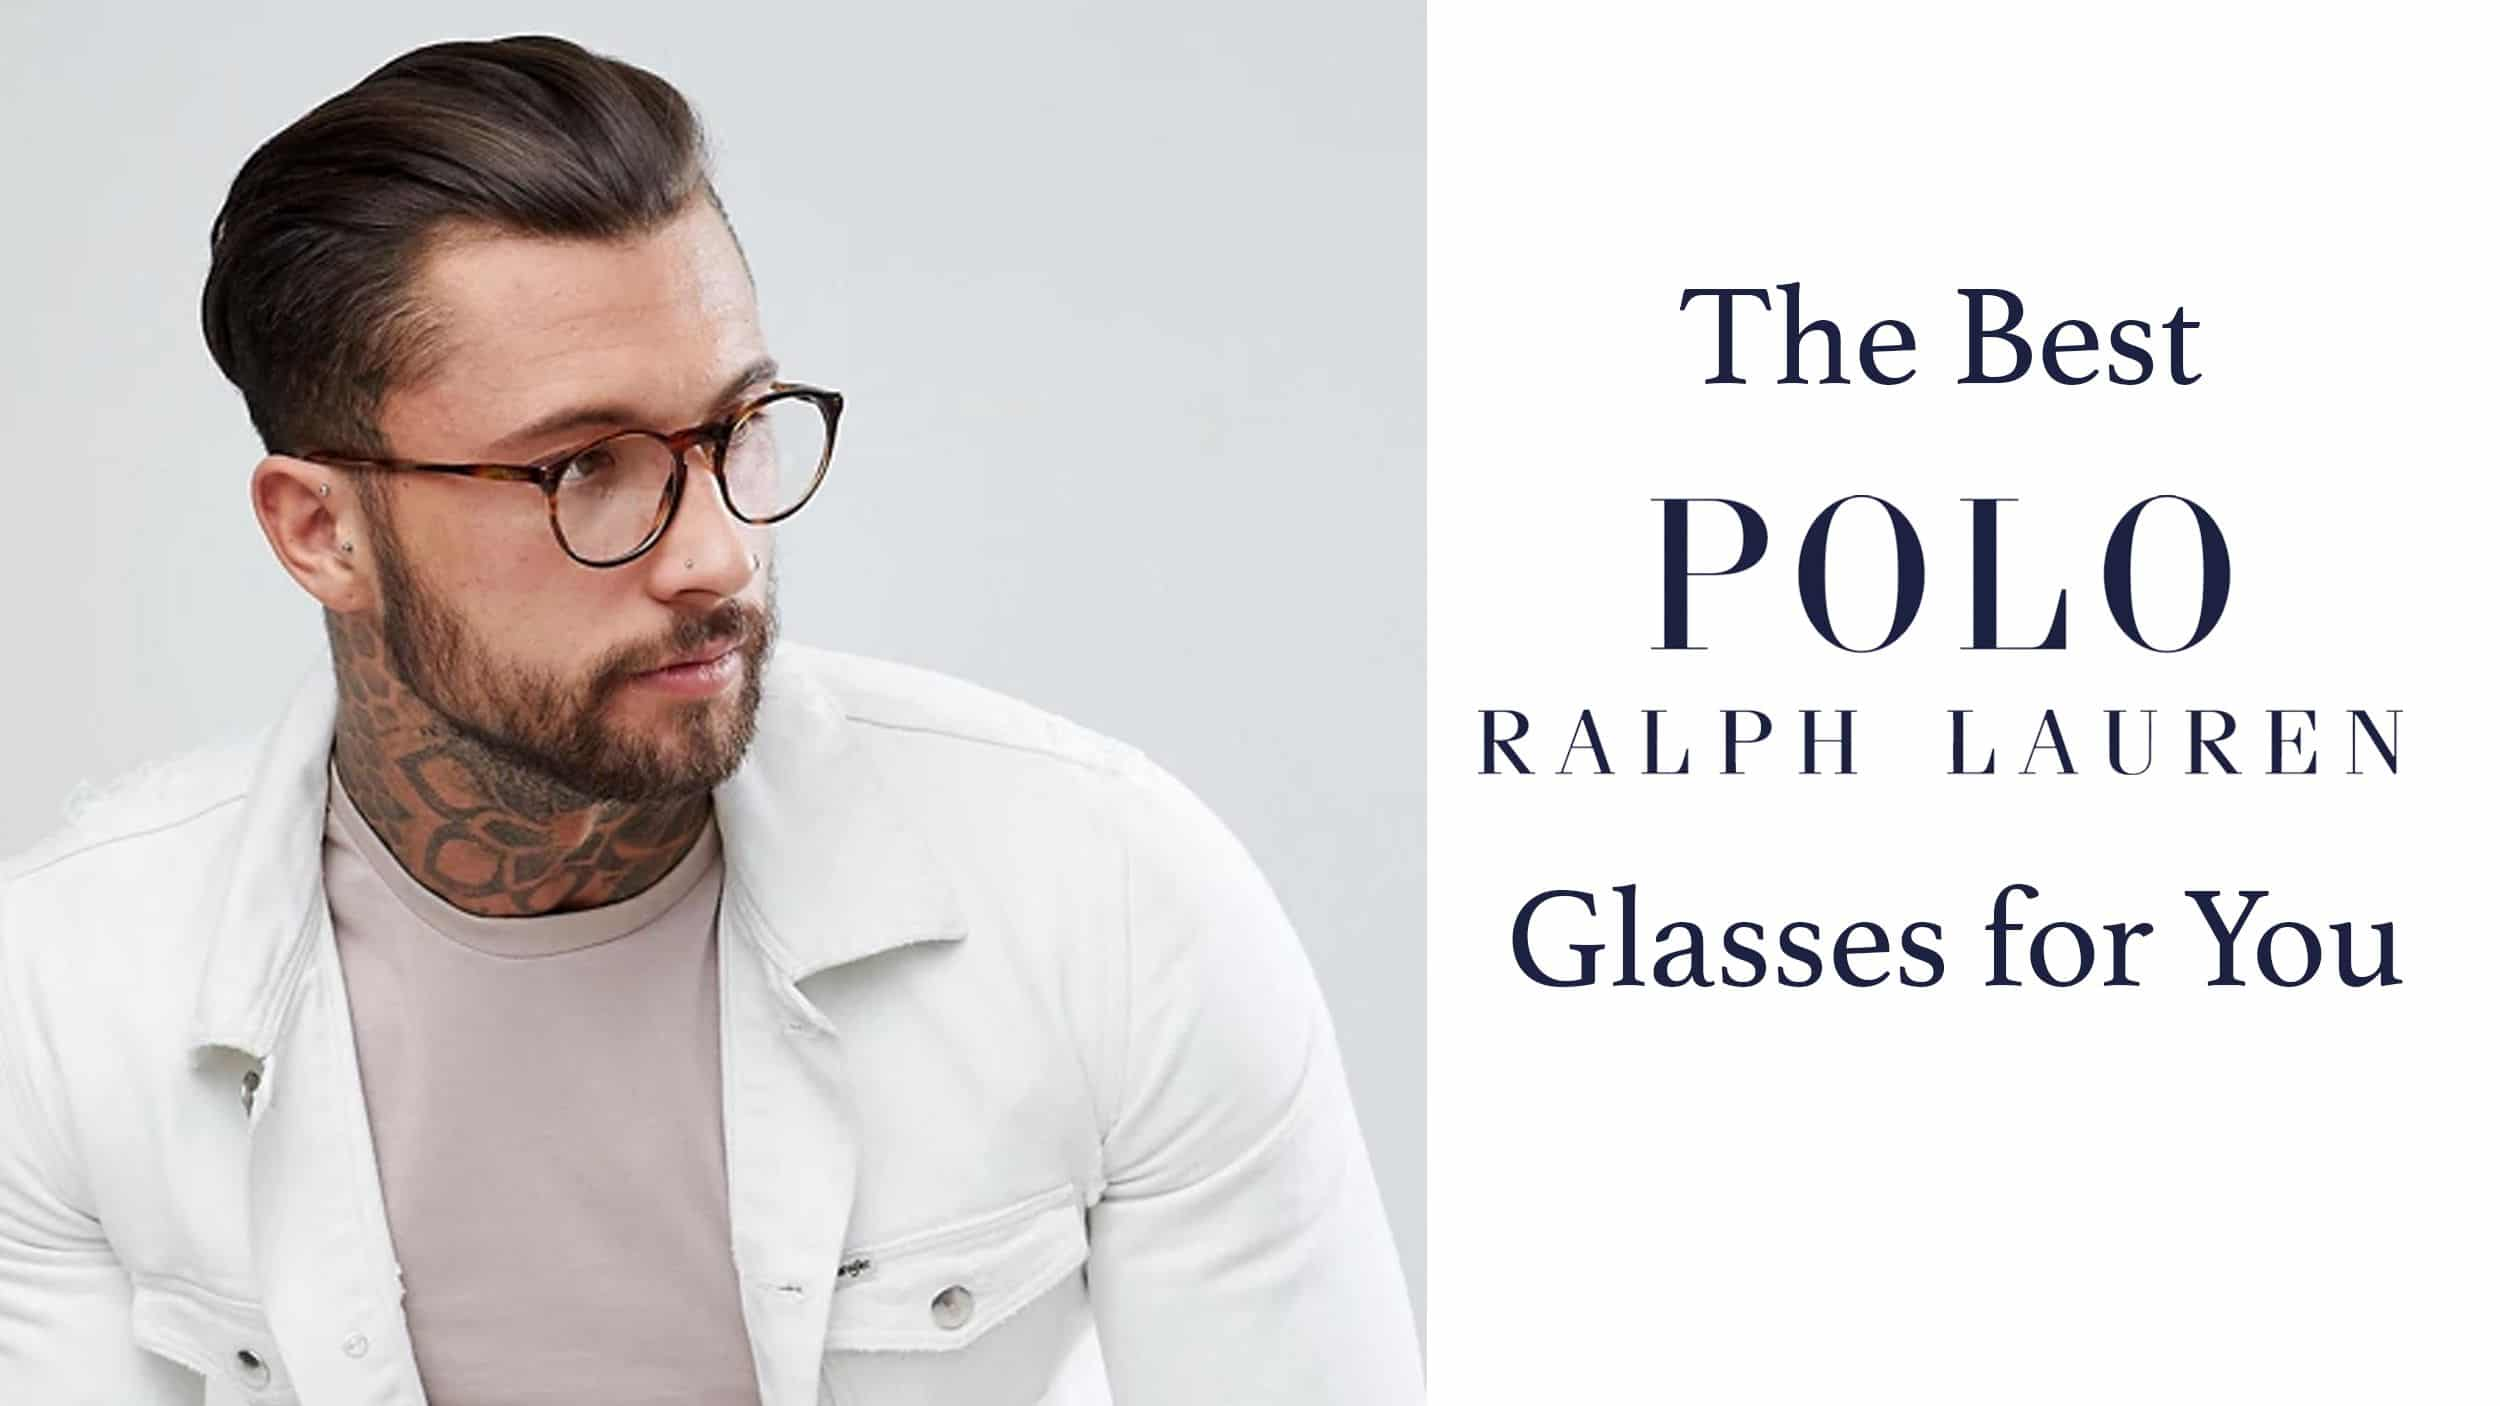 The Best Polo Ralph Lauren Glasses for You Header